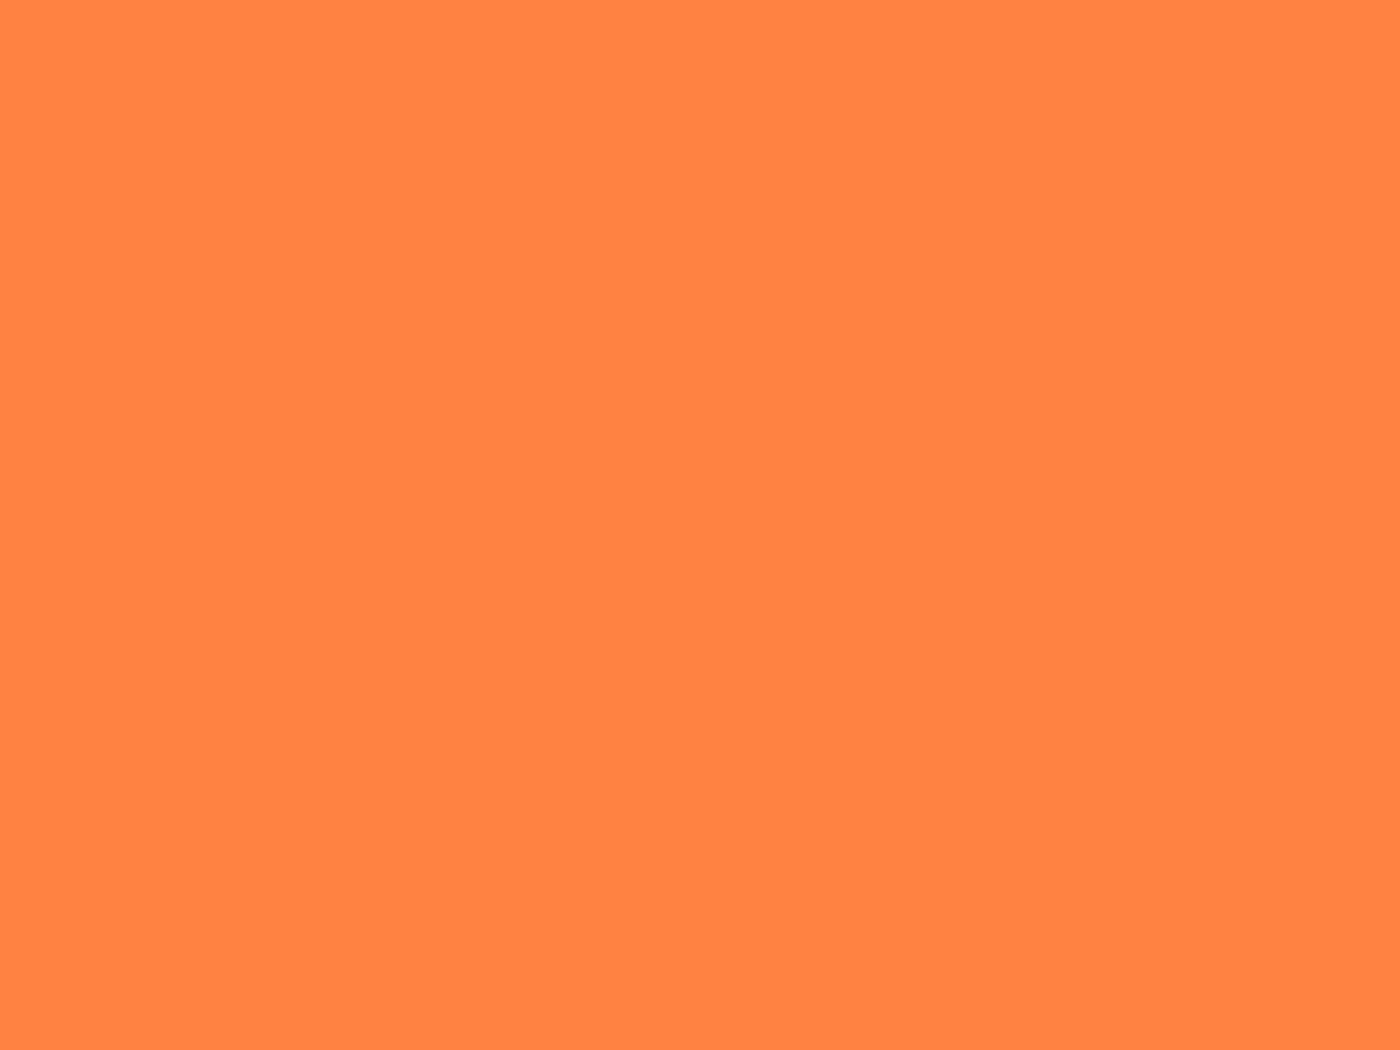 1400x1050 Mango Tango Solid Color Background